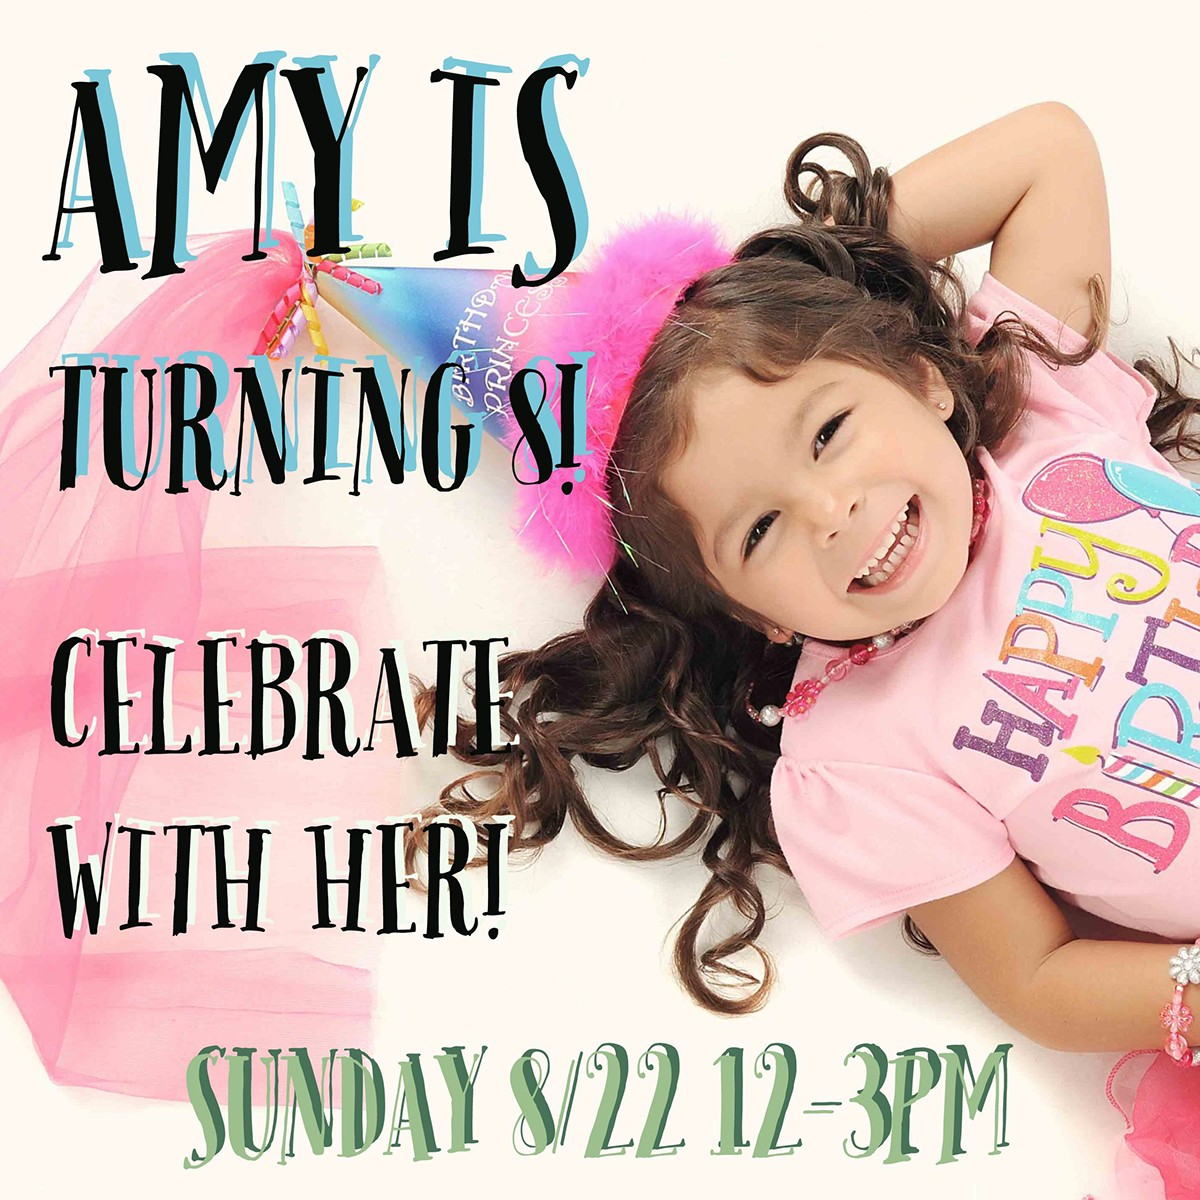 birthday design invitations ; 8yrold-bday-invite